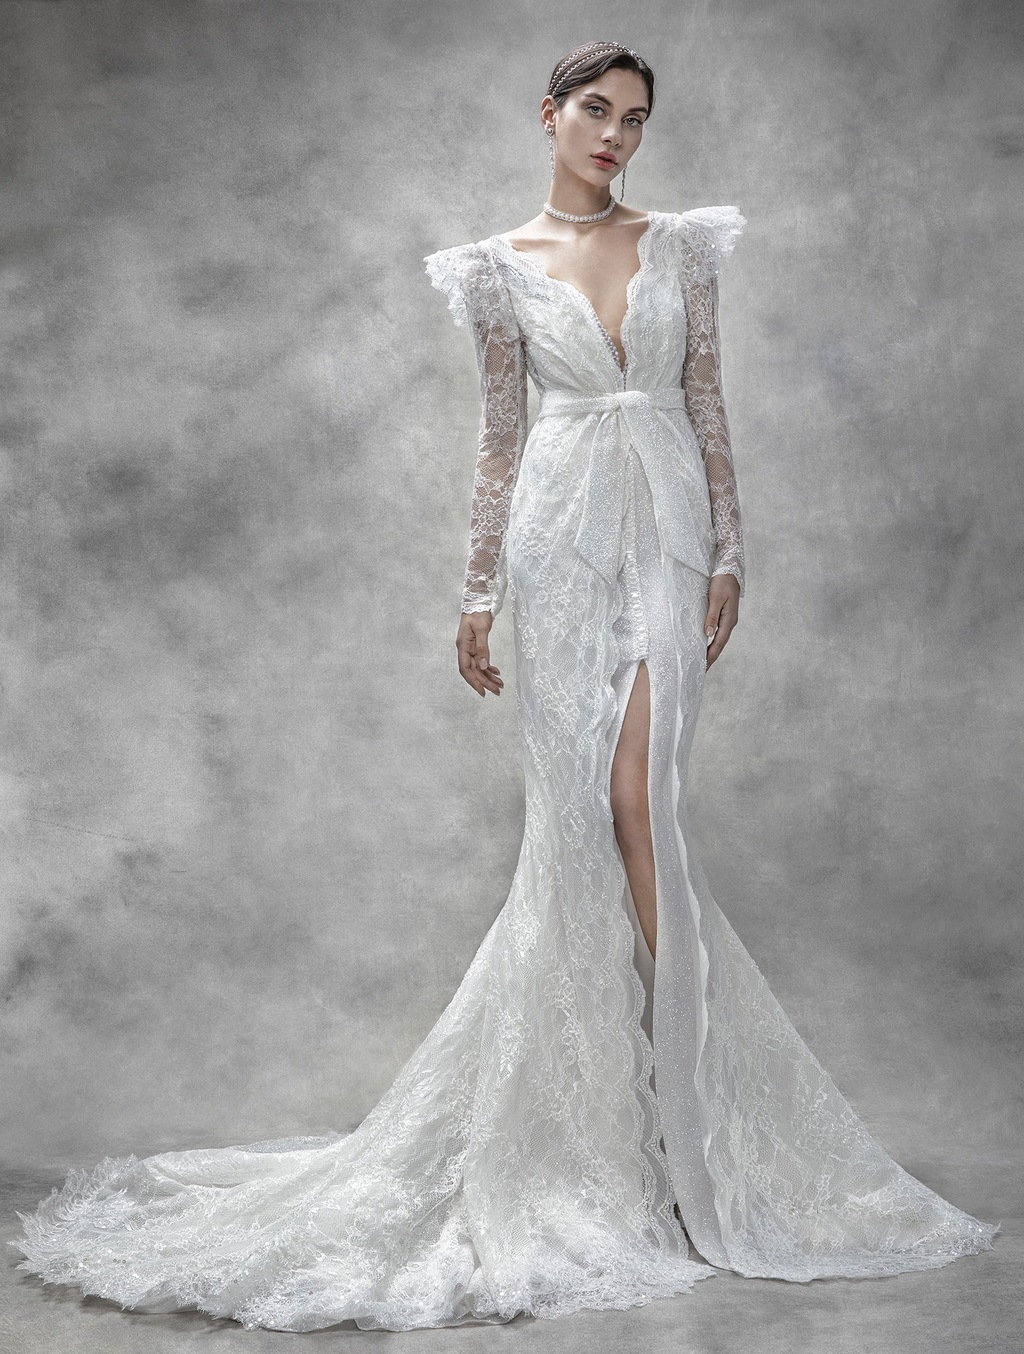 e0aaf97525 Victoria KyriaKides Fall 2017 Bridal Collection ⋆ Ruffled